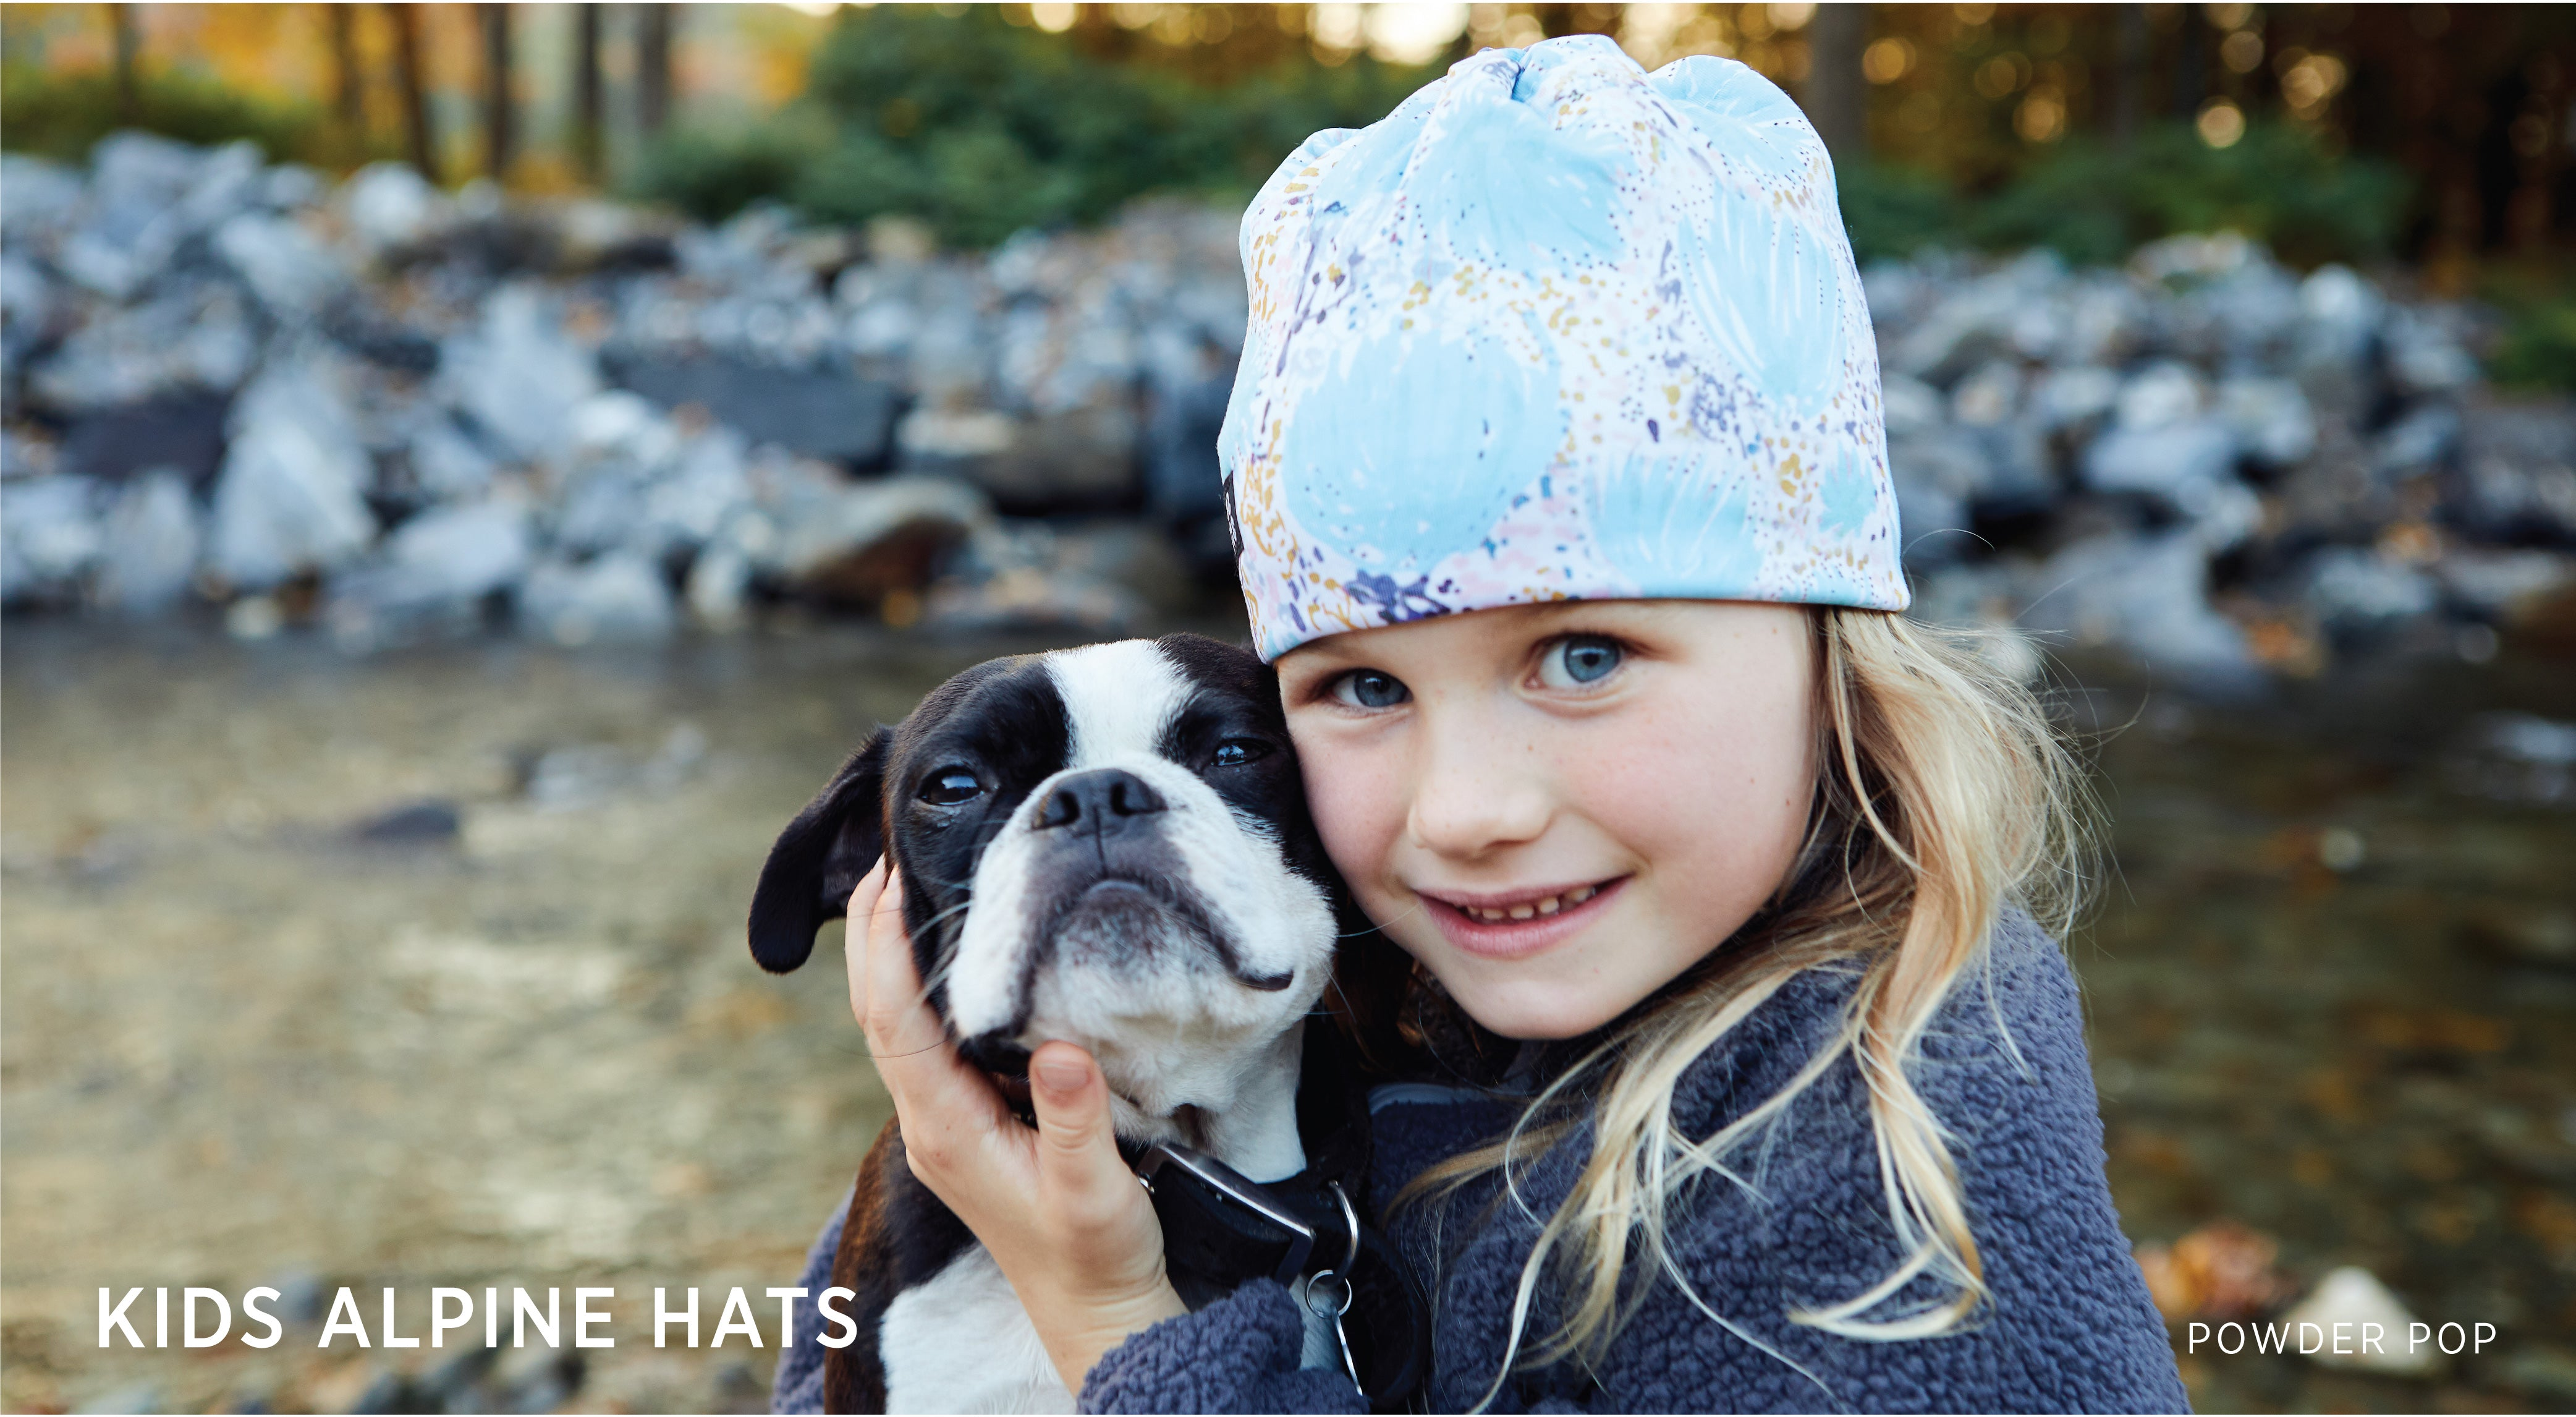 Shop Kids Alpine Hats!